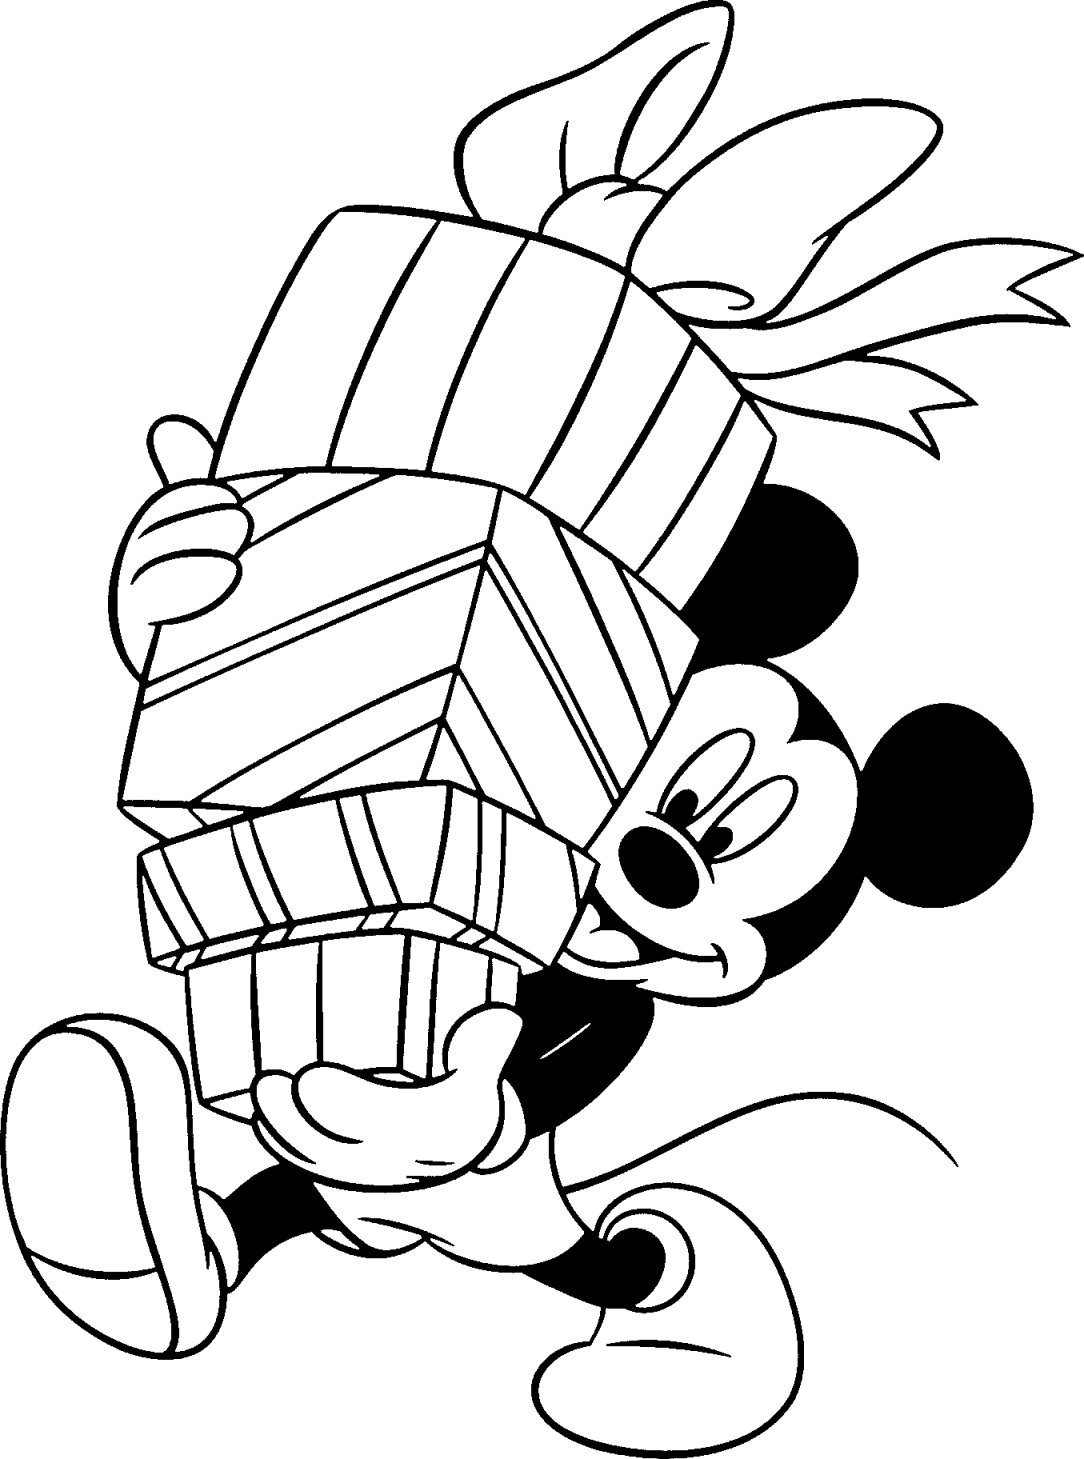 birthday present coloring page - birthday gifts and balloons mickey mouse disney coloring